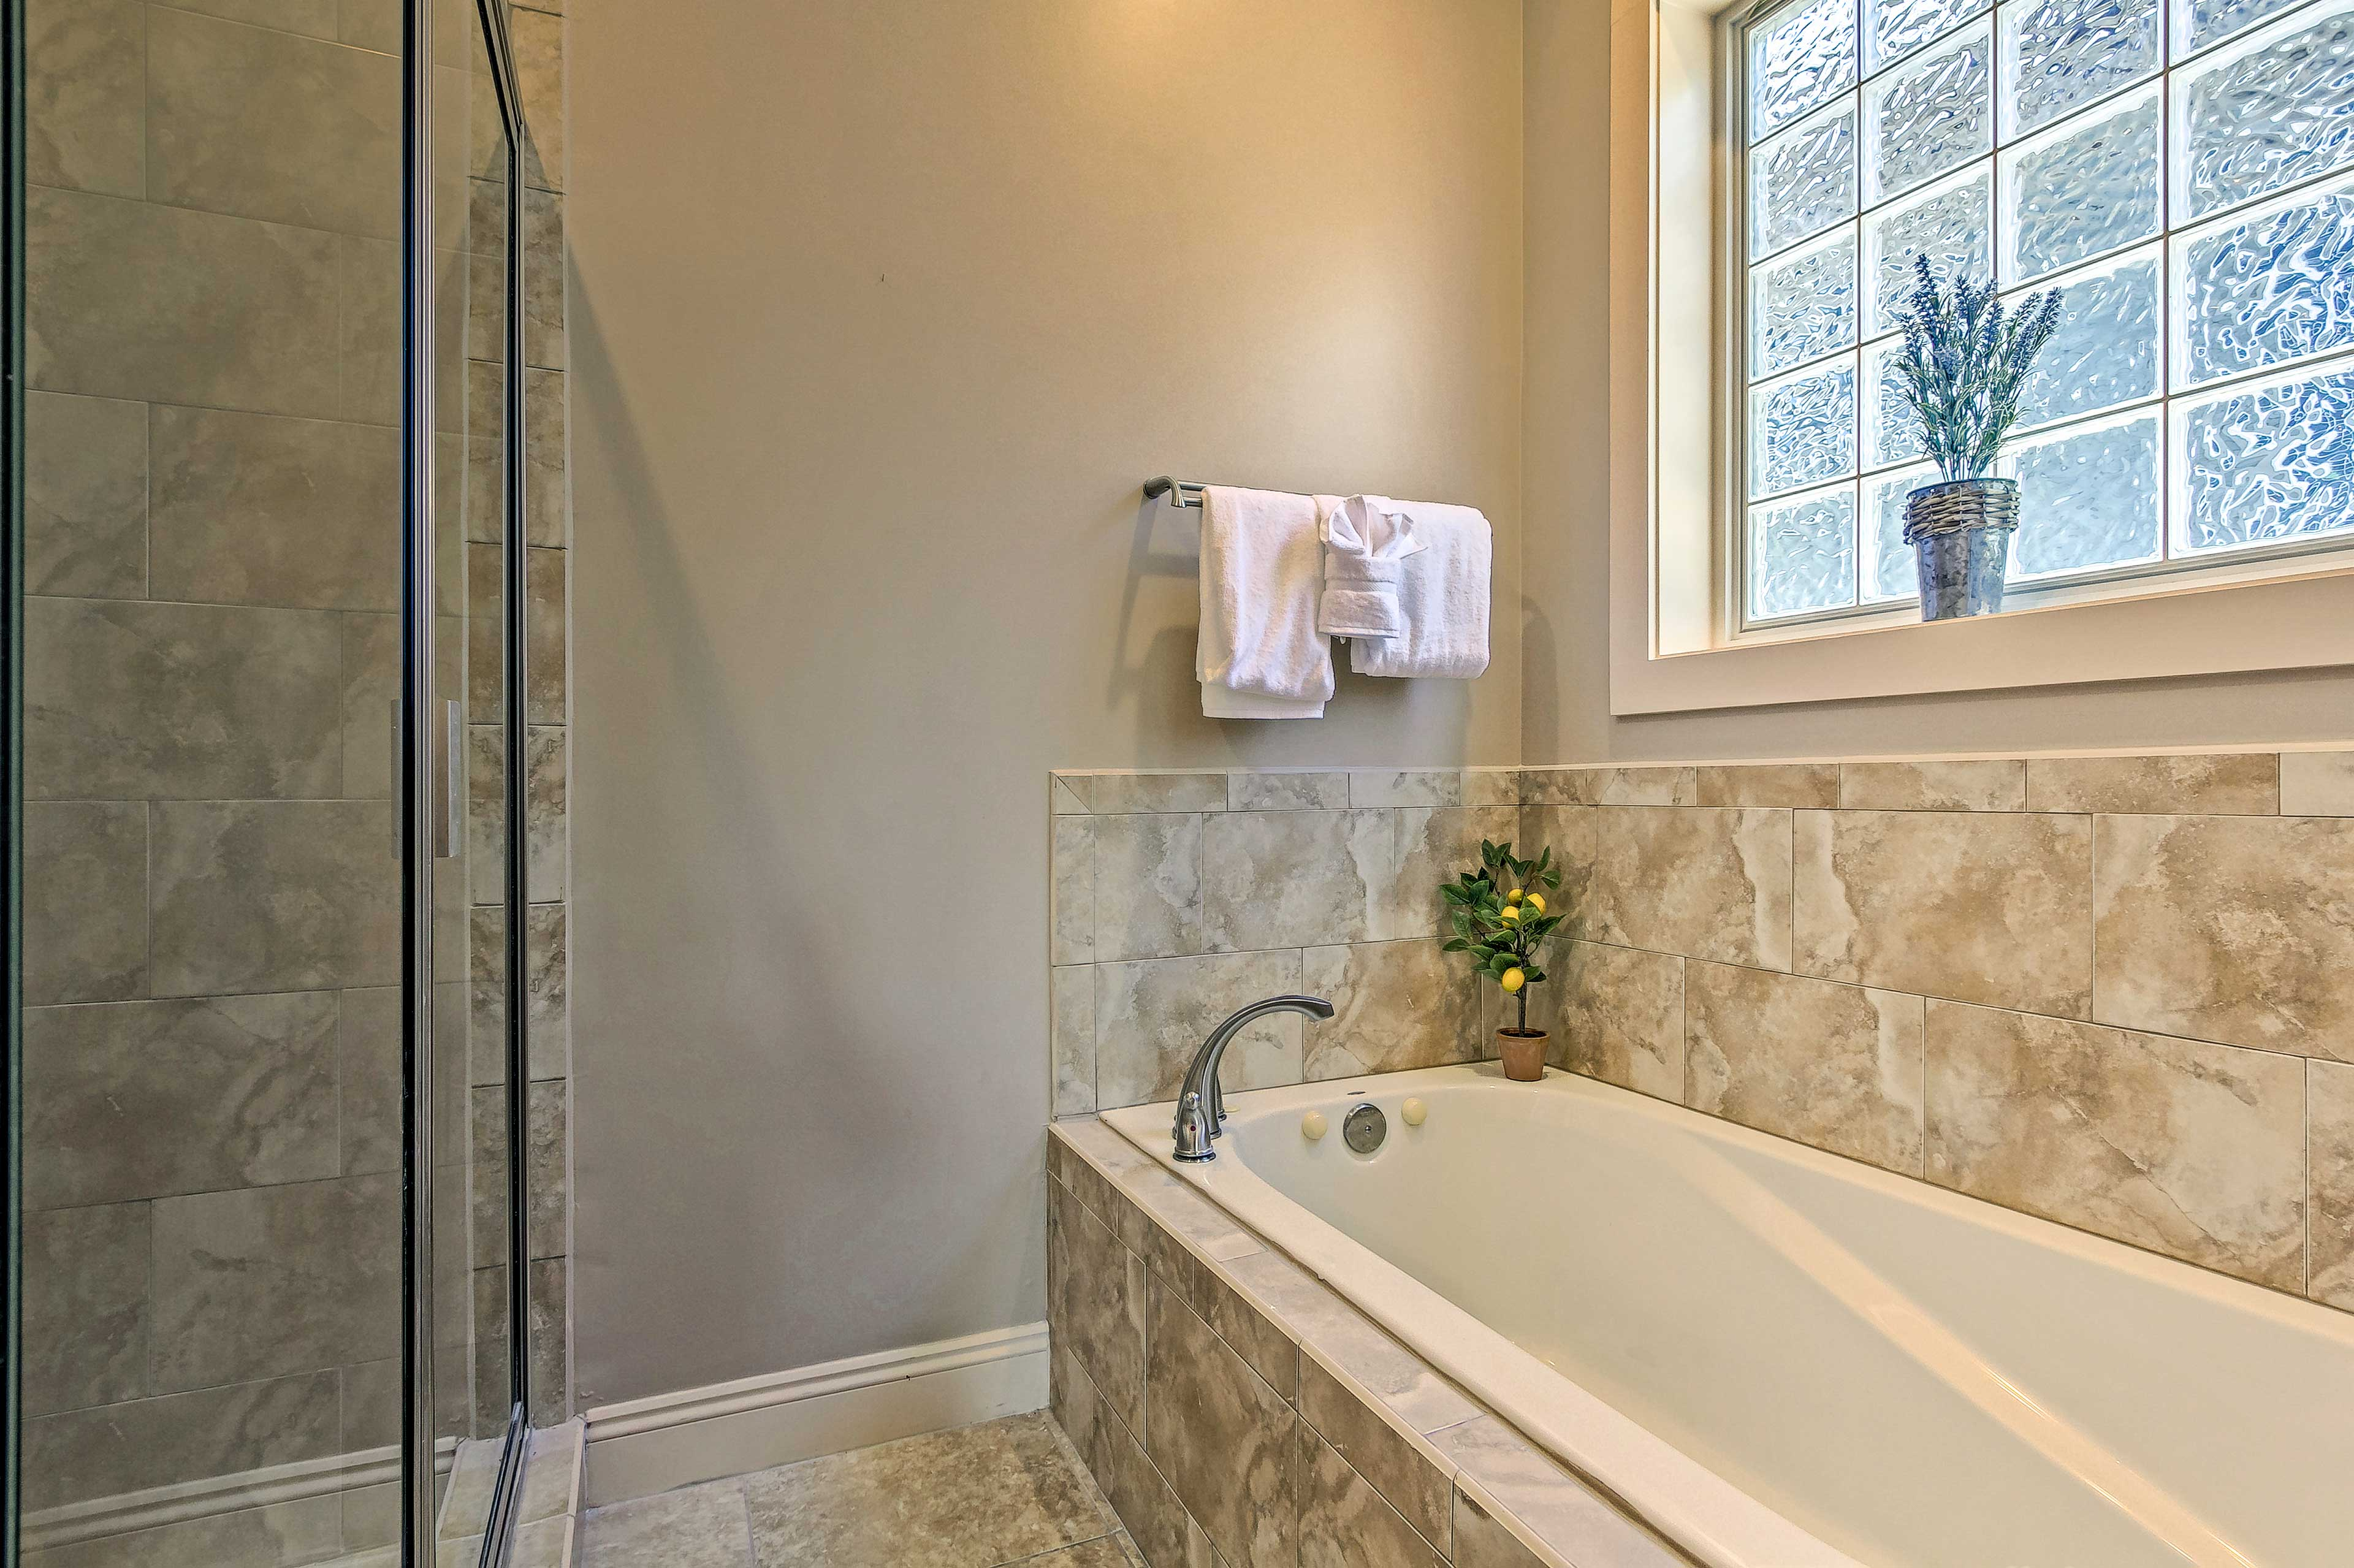 Rinse off in the walk-in shower or enjoy a soothing soak in the tub.